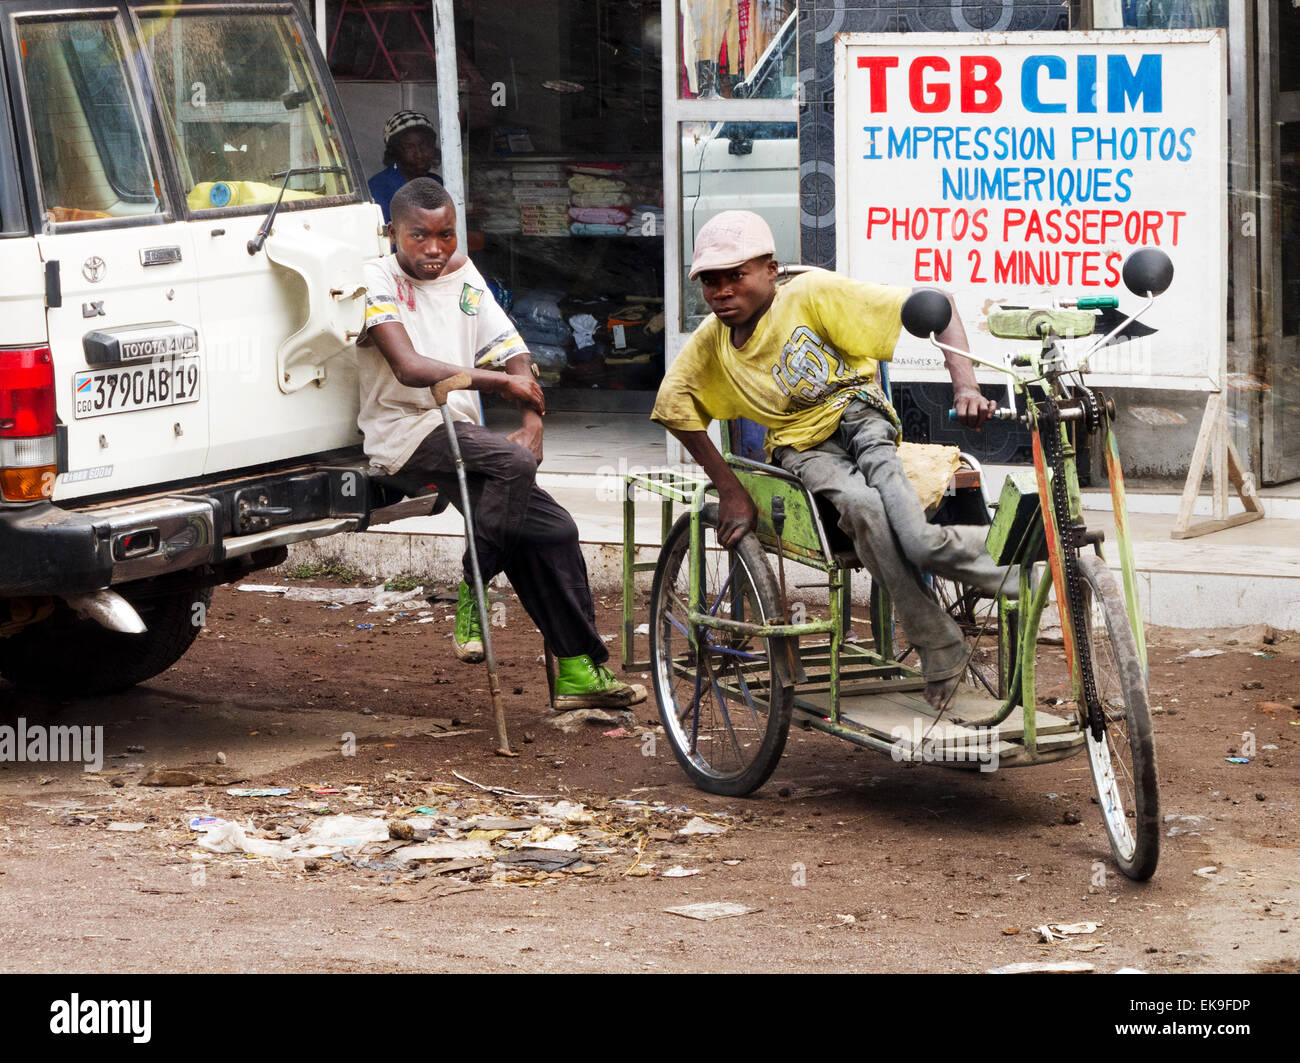 Disabled people, one in a wheelchair, Goma, Democratic Republic of Congo ( DRC ), Africa - Stock Image